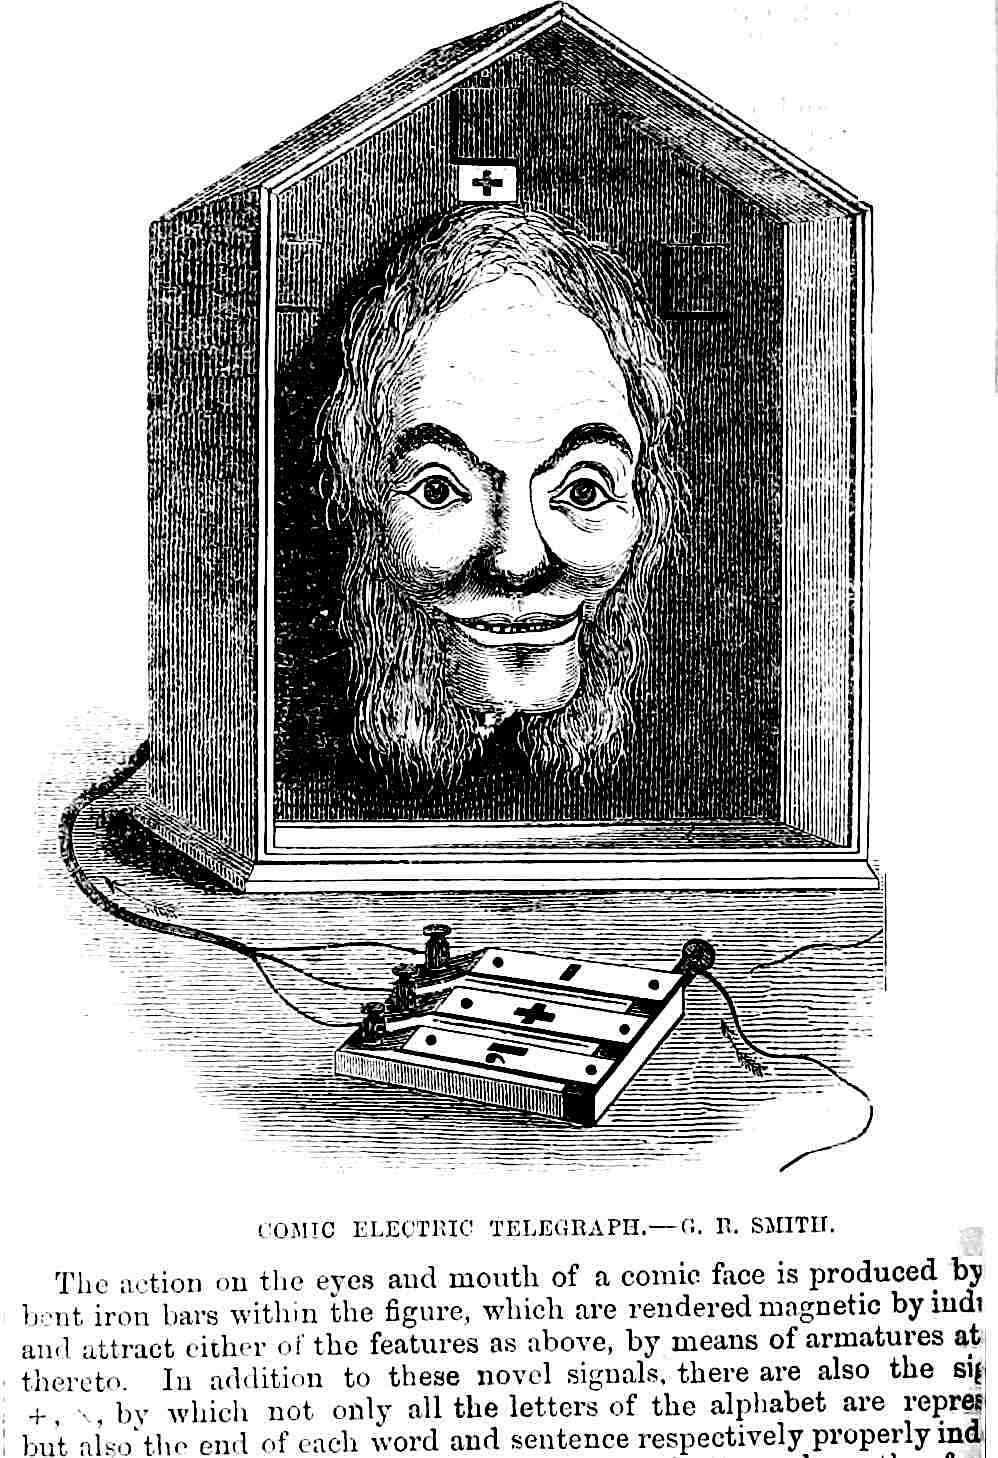 Comic Electric Telegraph, 1851 Great Exhibition London, a very early display of magnetic electricity moved the mouth